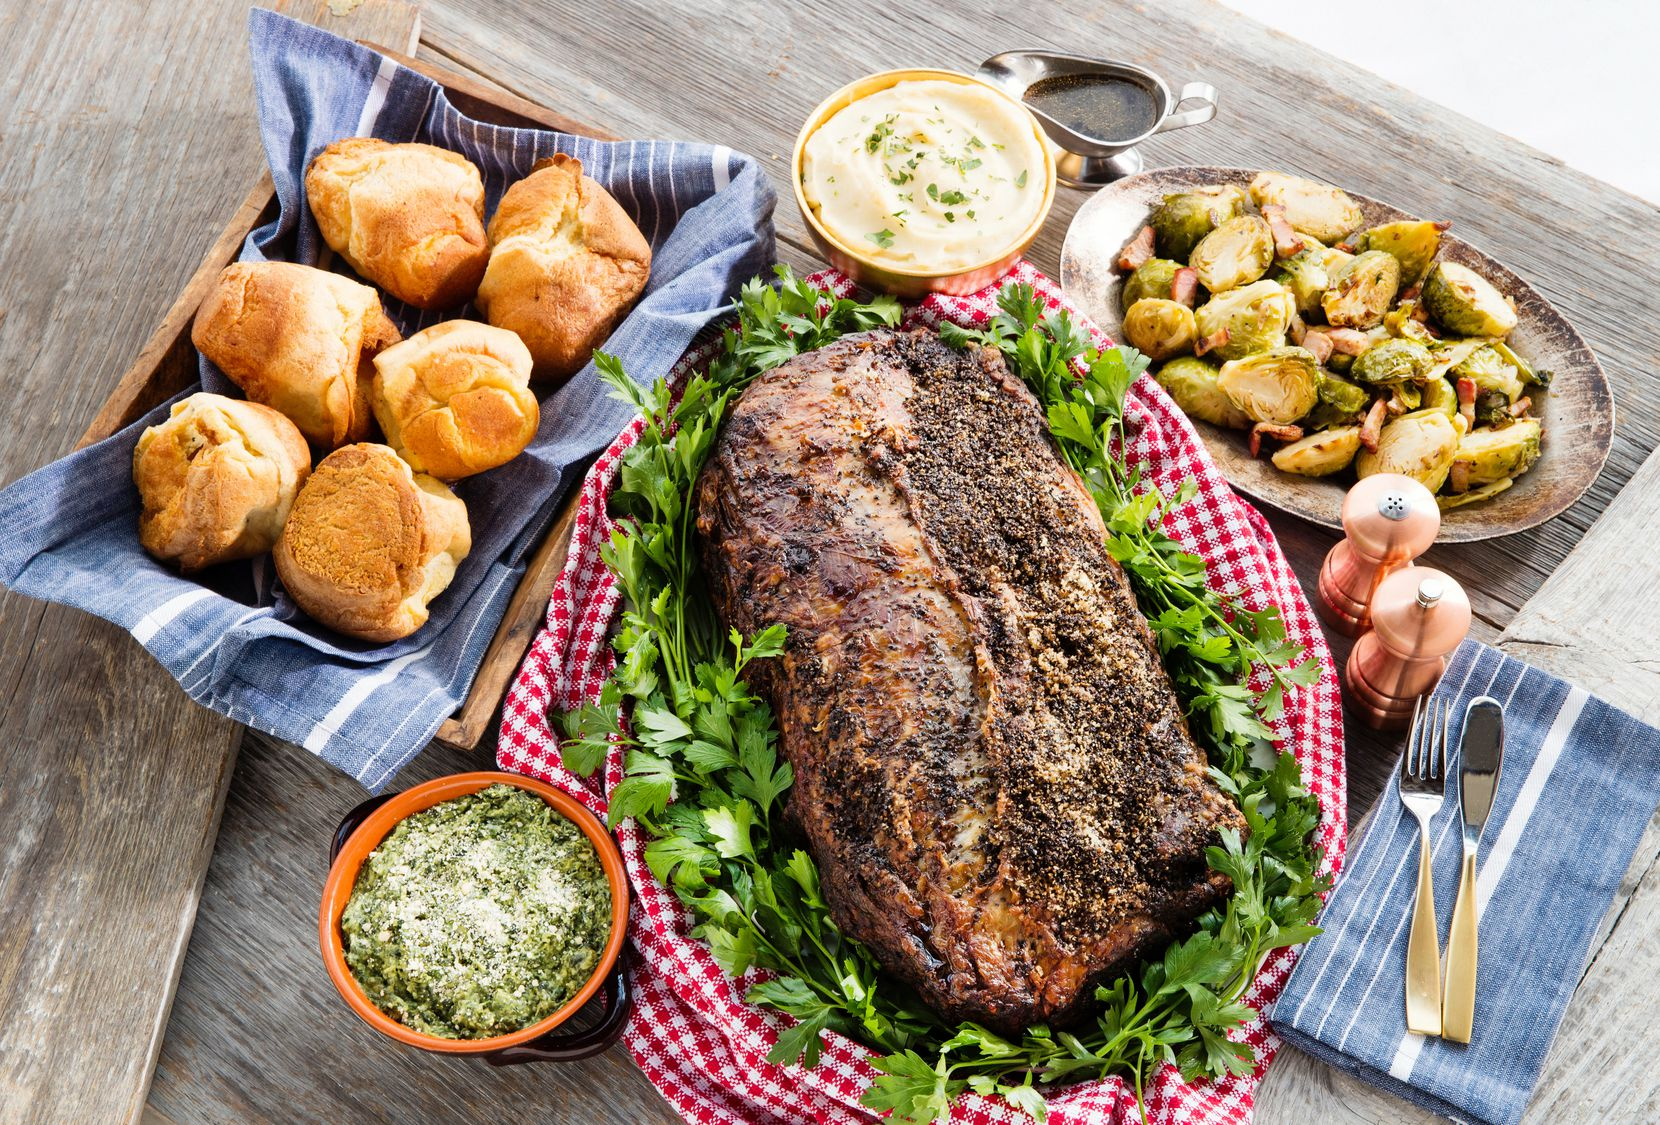 B&B Butchers & Restaurant offers a prime rib with Yorkshire pudding Thanksgiving menu to go.